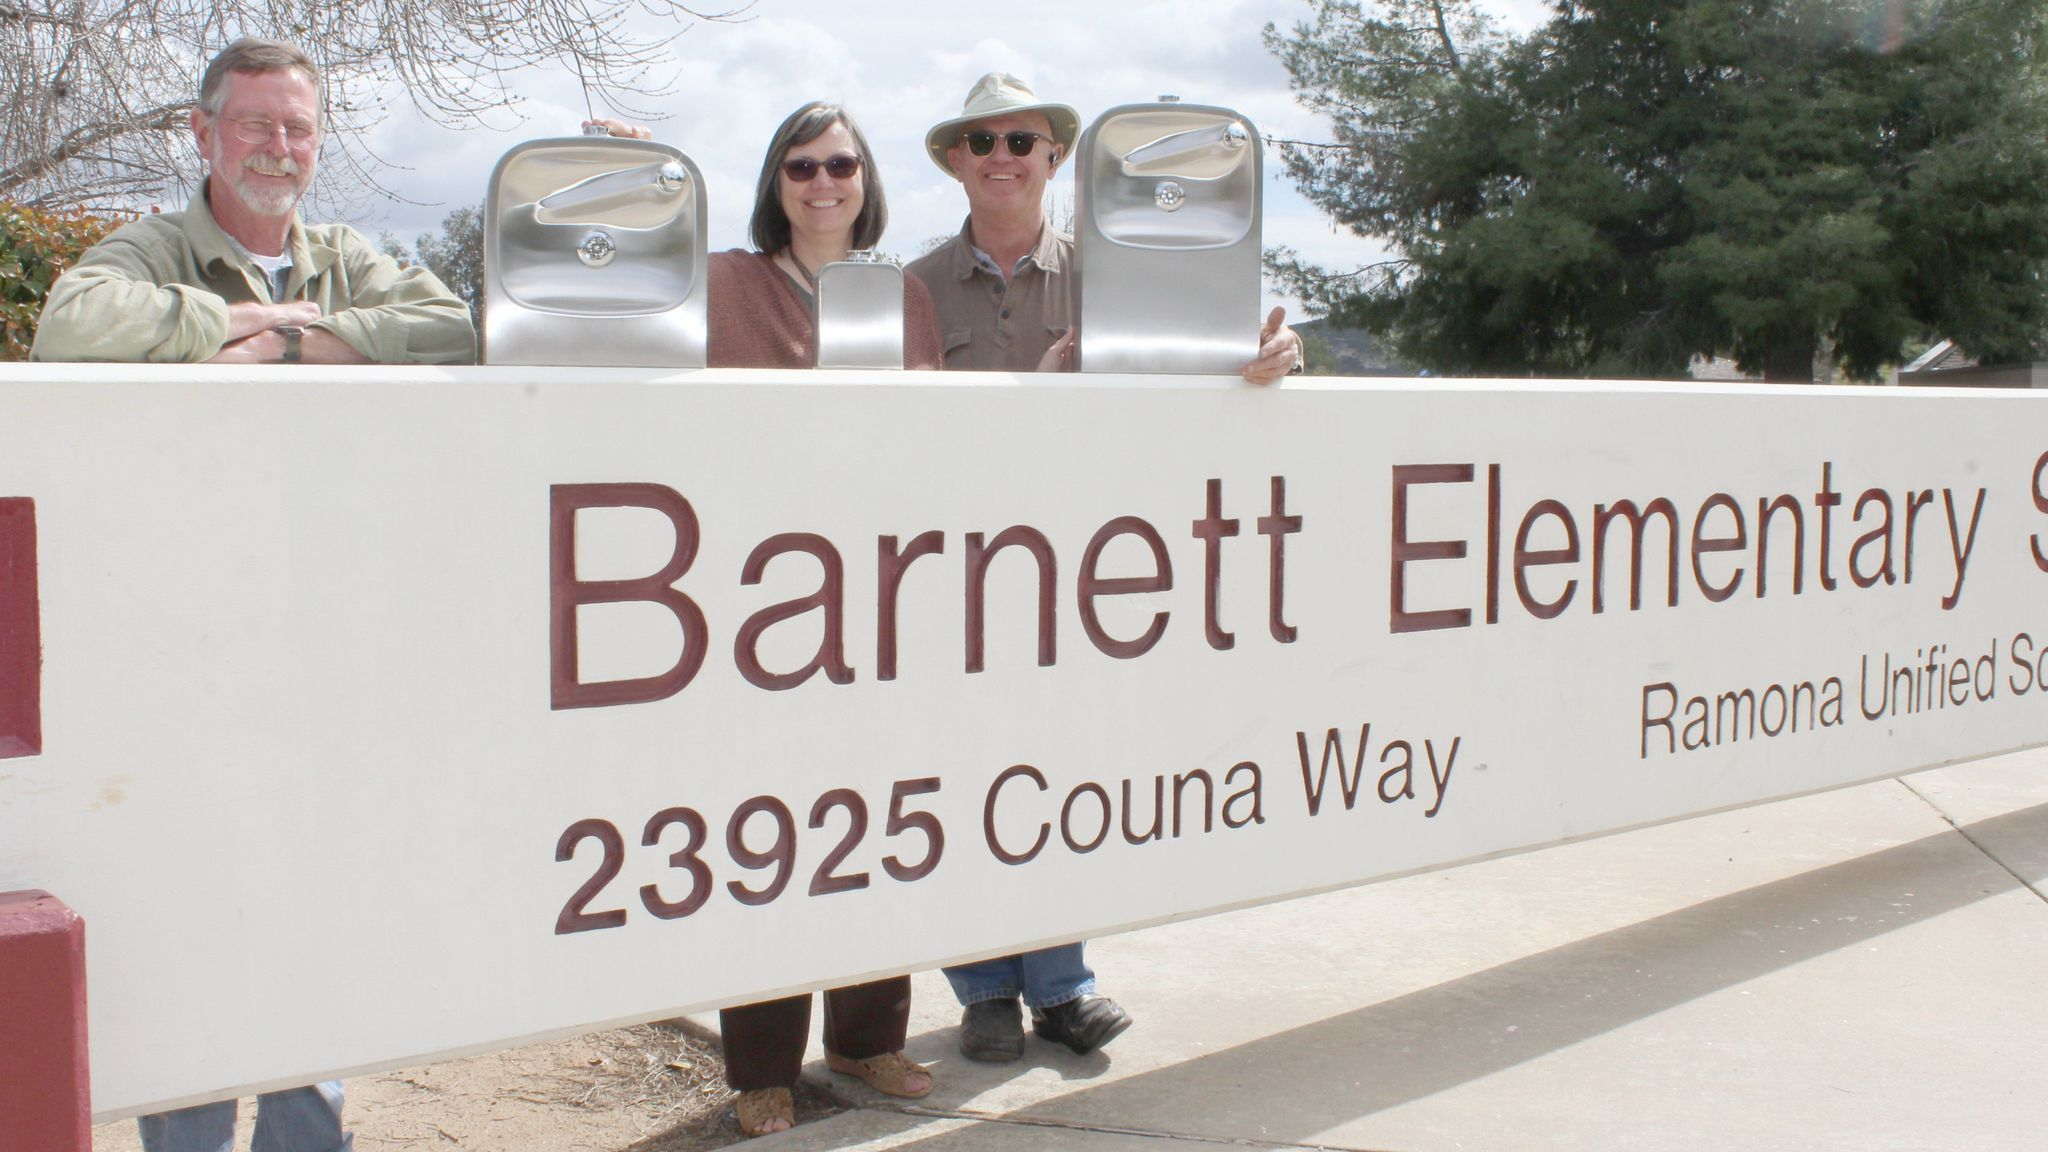 What are some ways to contact Burnett Elementary School?